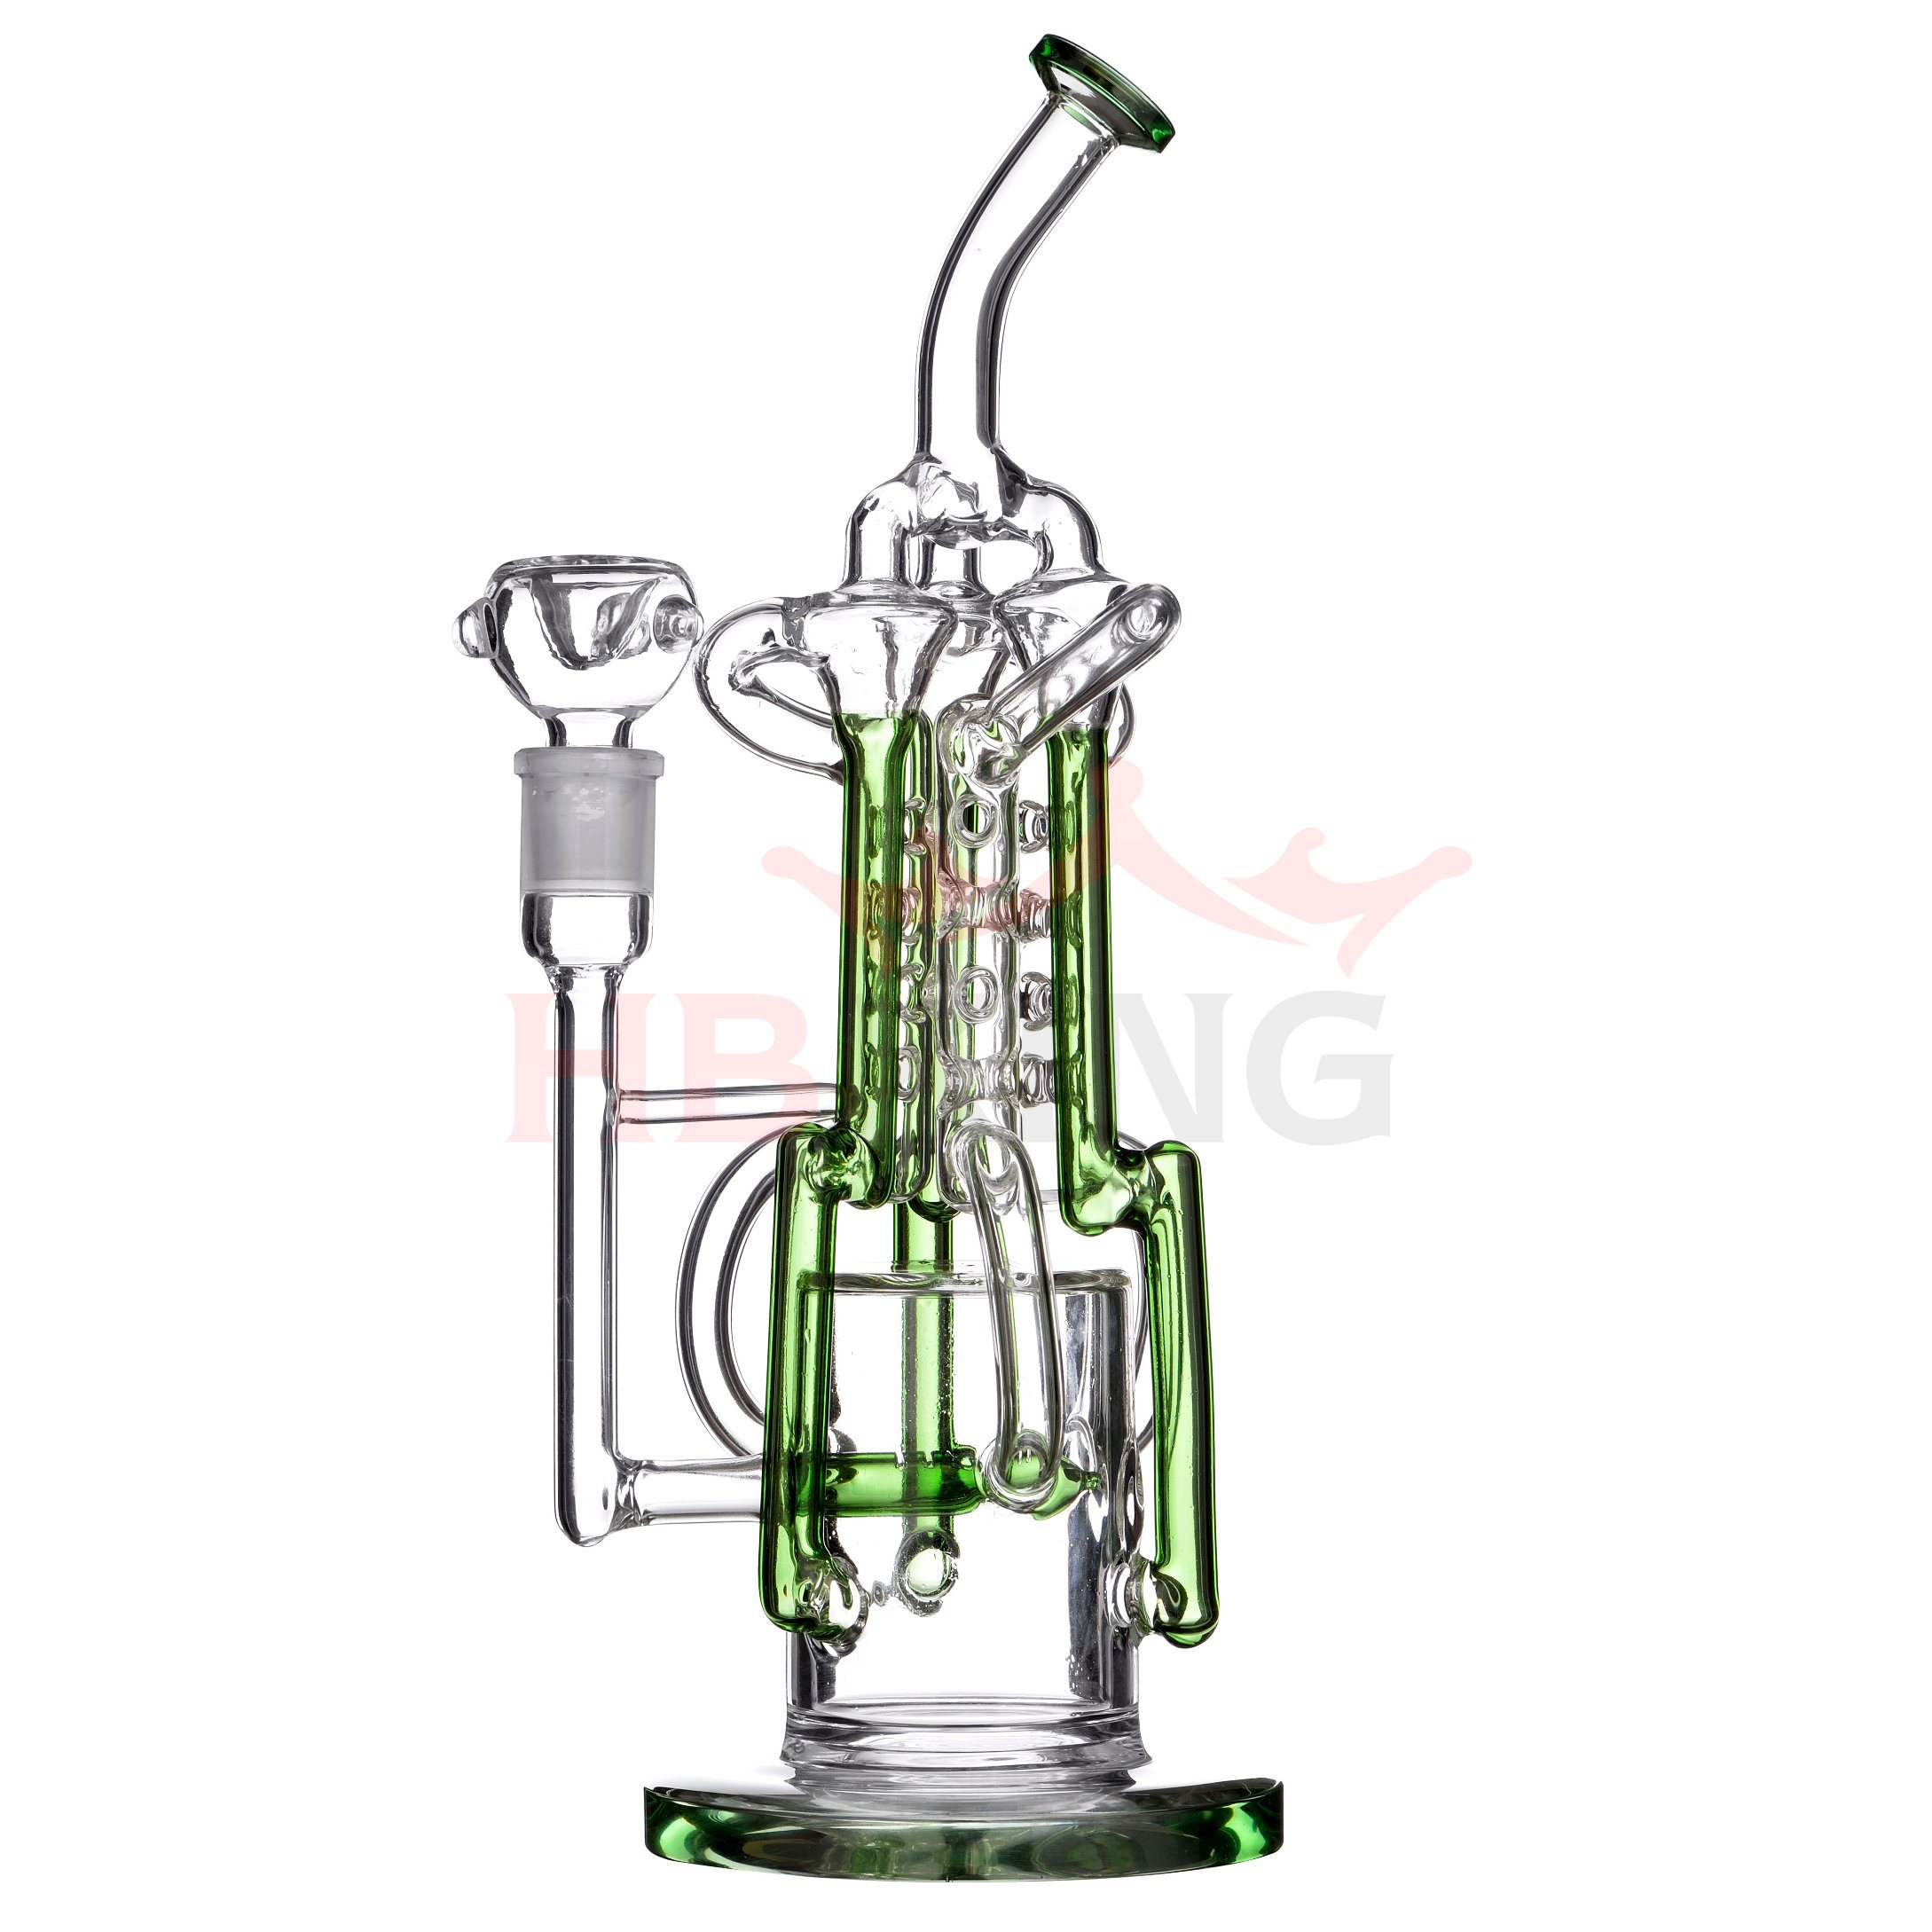 Hb-K183 Detached 2 Parts Spiral Coil Percolator Swiss Biscuit Shape Glass Smoking Water Pipe